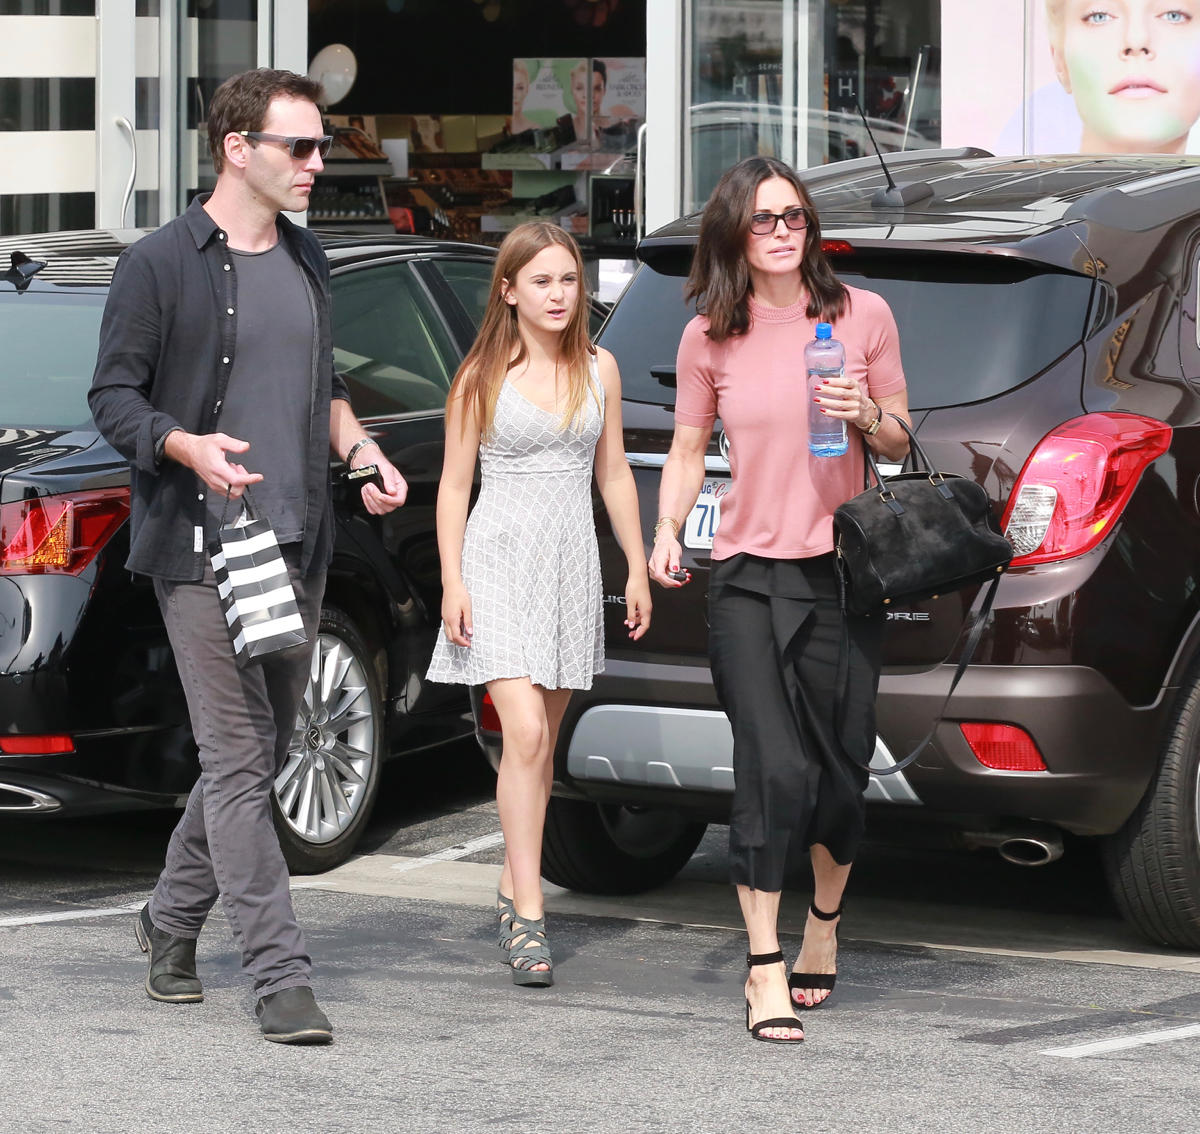 Johnny McDaid mit Coco Arquette und ihrer Mutter Courteney Cox beim shoppen in Malibu.